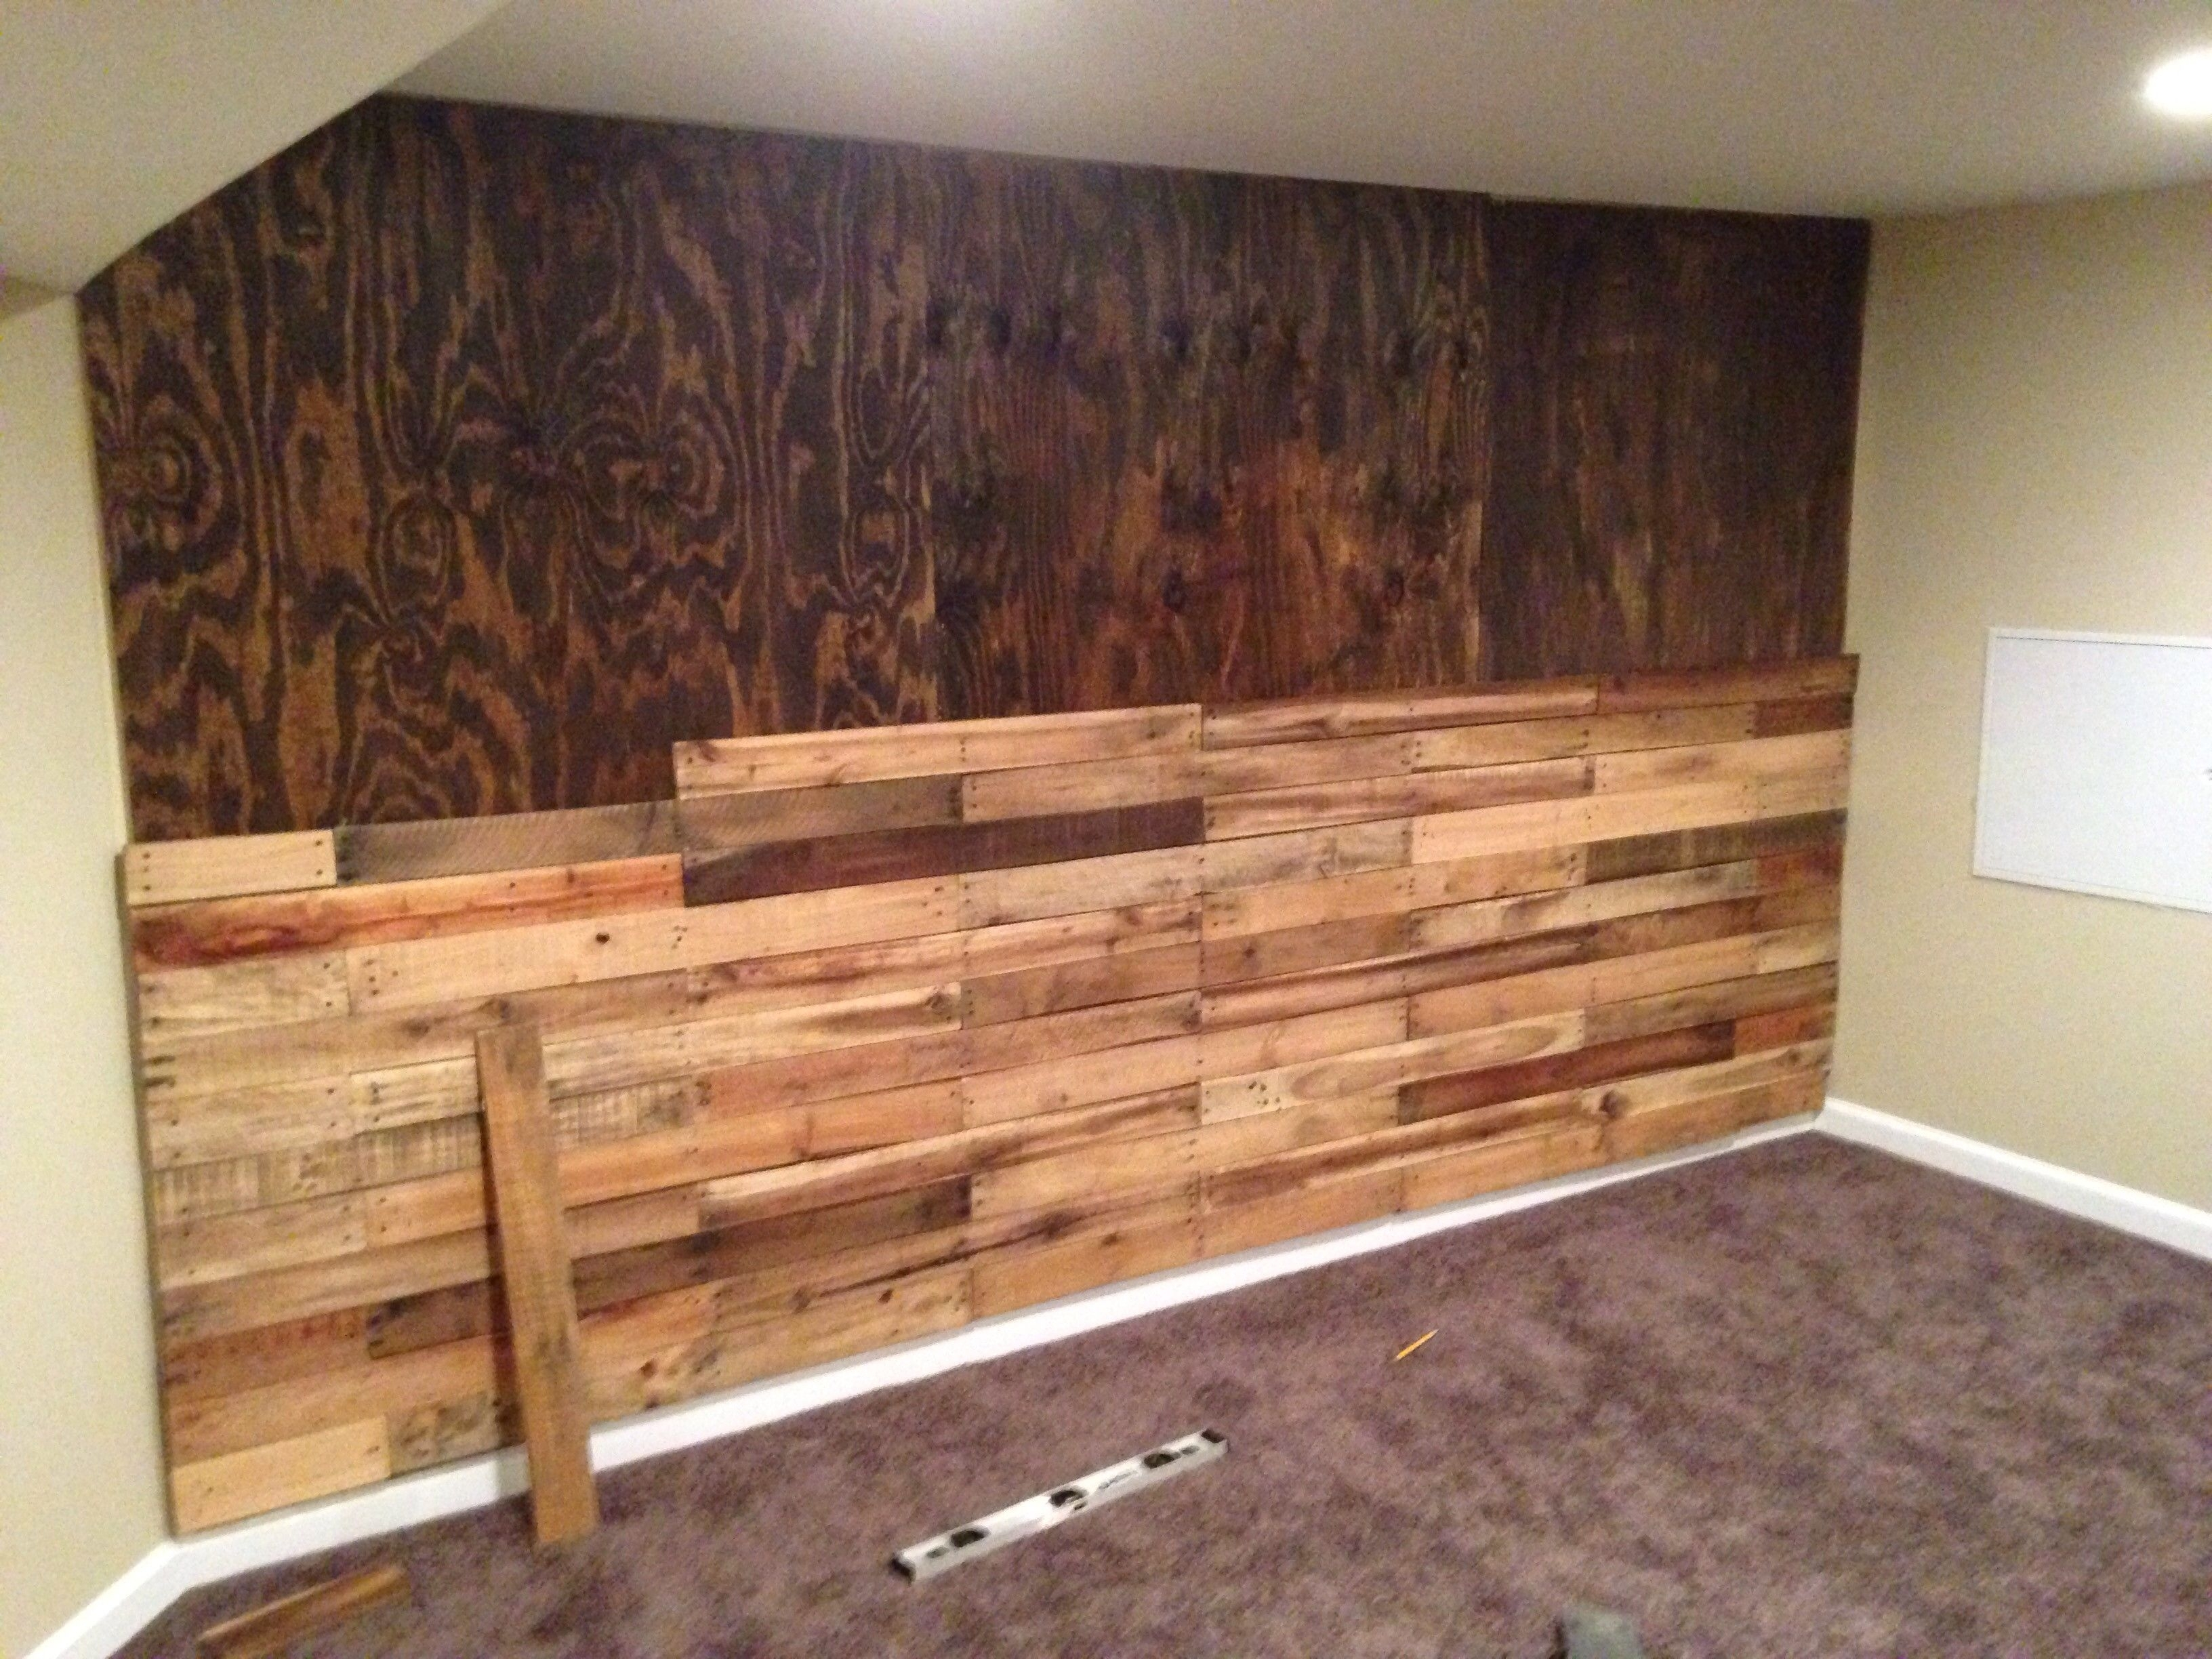 Pallet Accent Wall! | Pallet Accent Wall, Pallets And Walls Throughout Most Recent Wood Pallets Wall Accents (View 7 of 15)